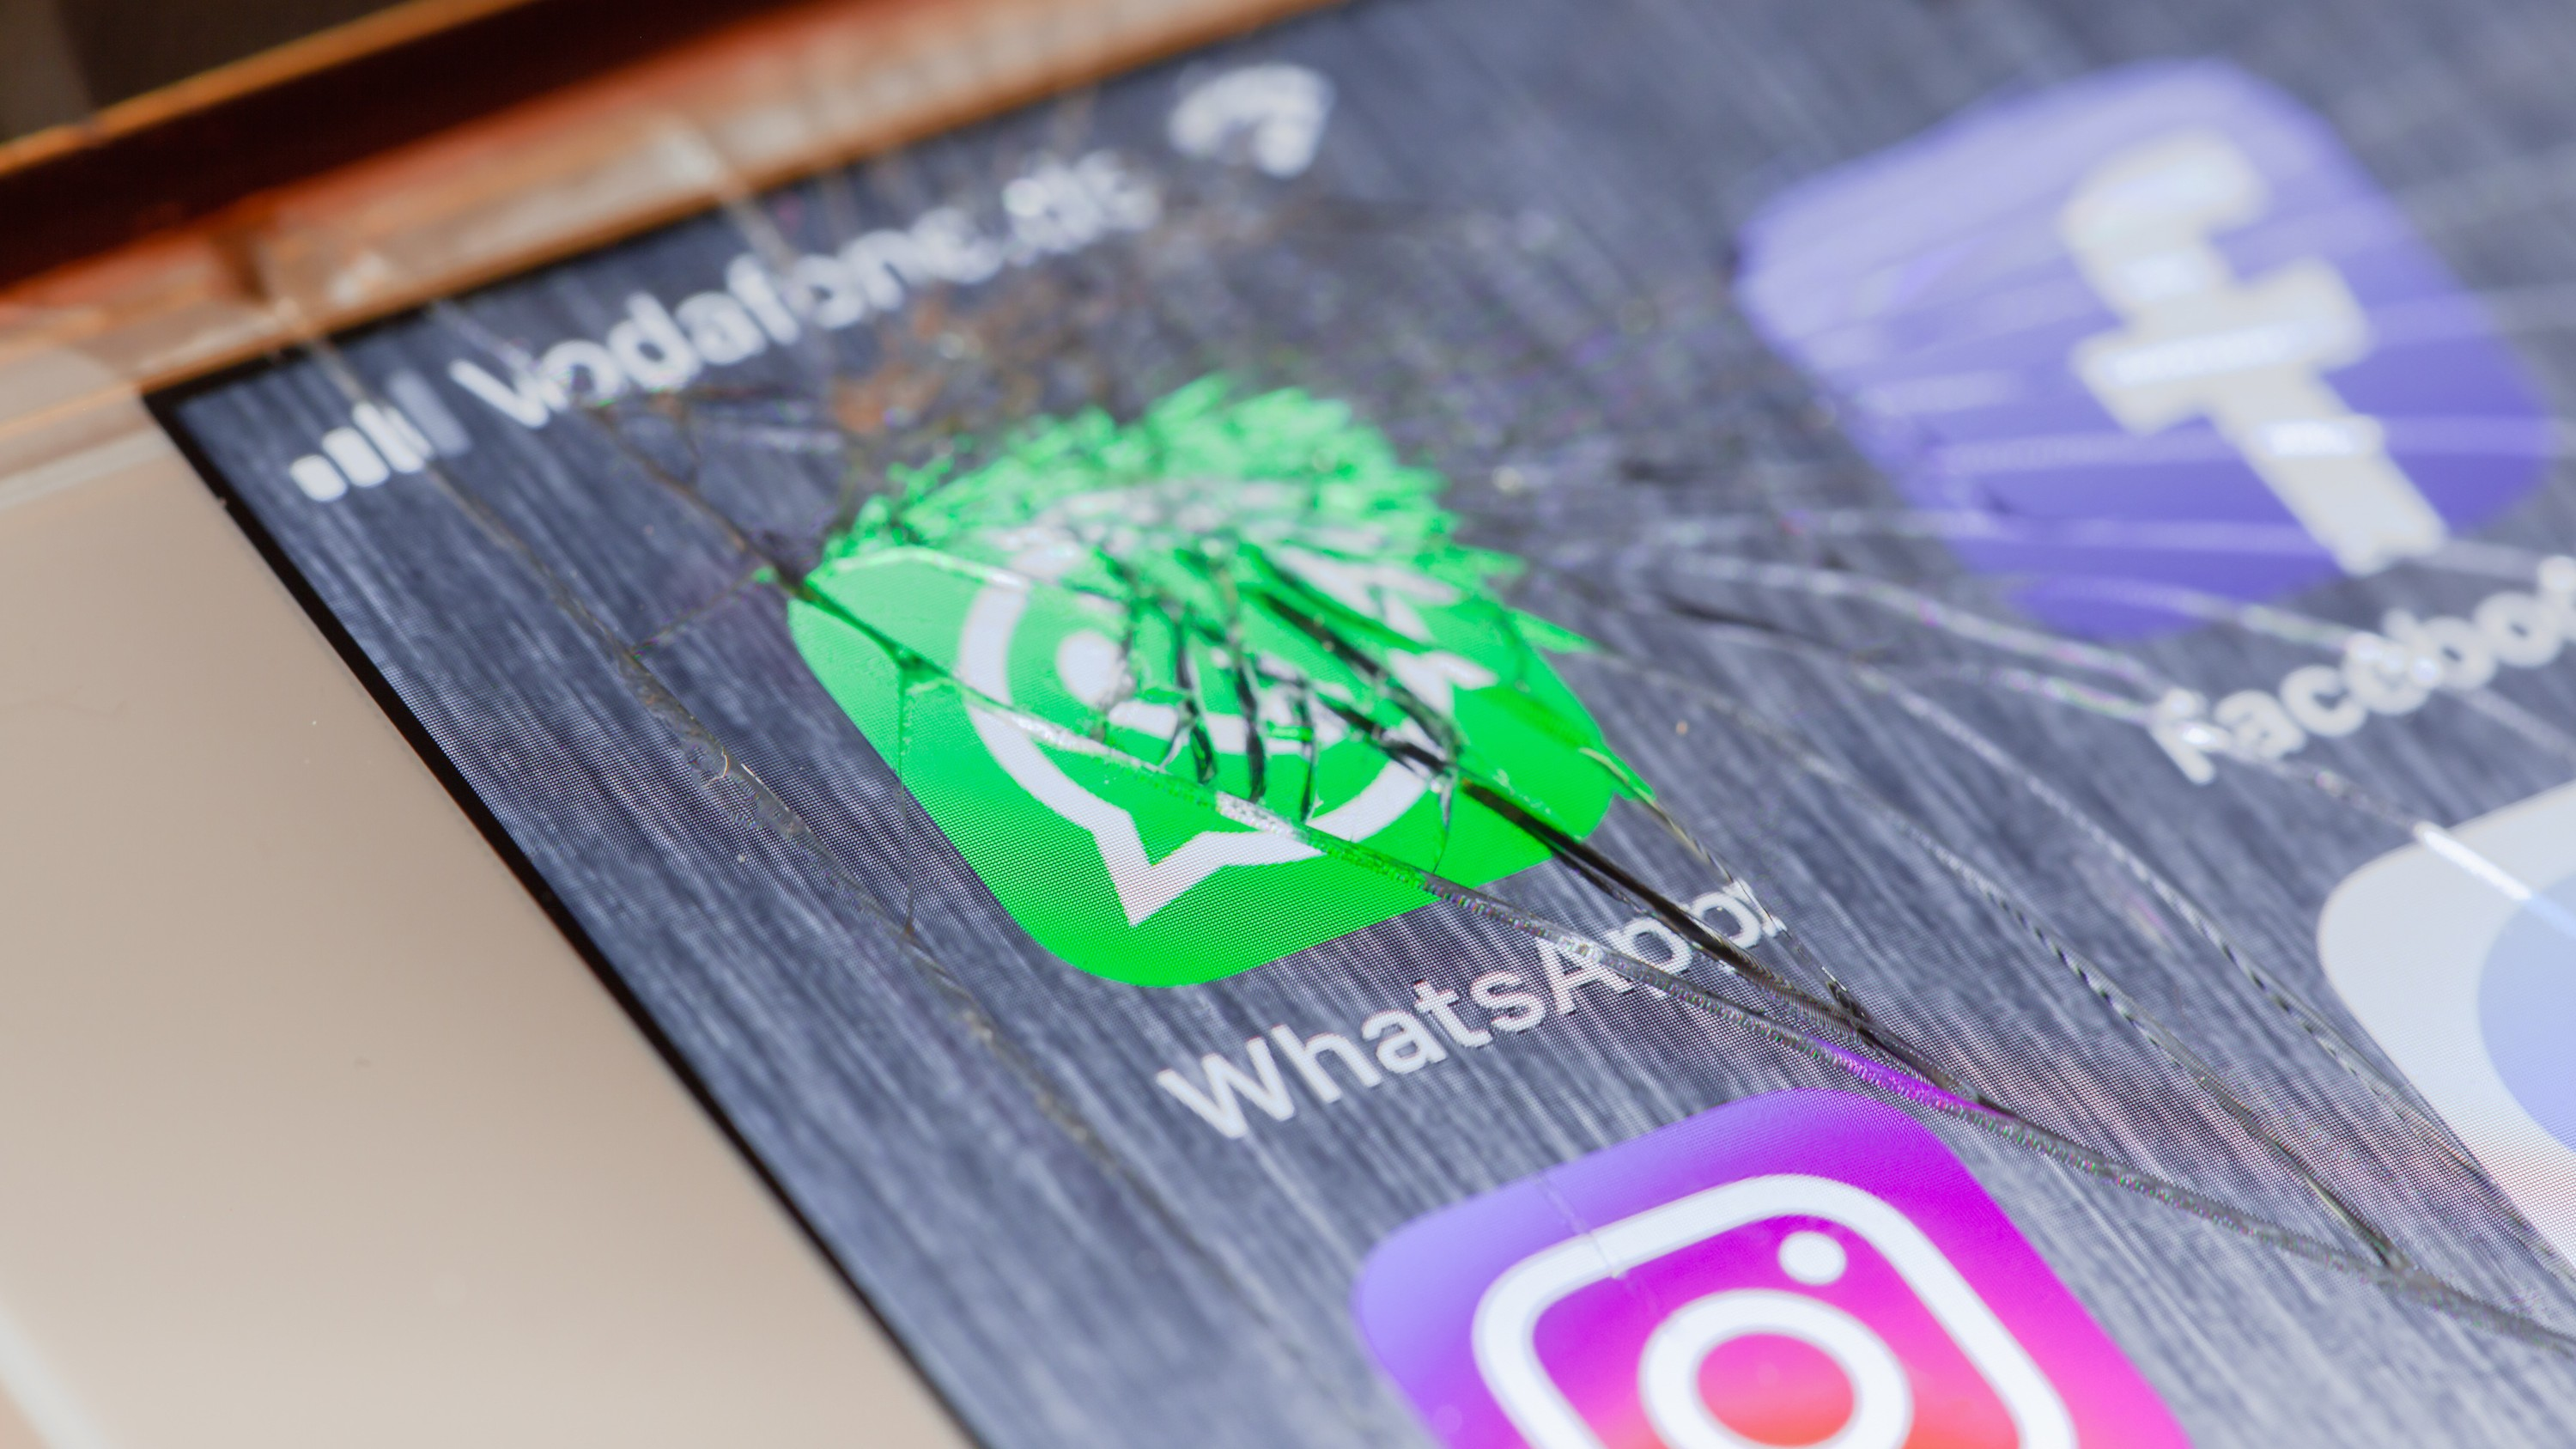 You Can Now Get $1 Million for Hacking WhatsApp and iMessage